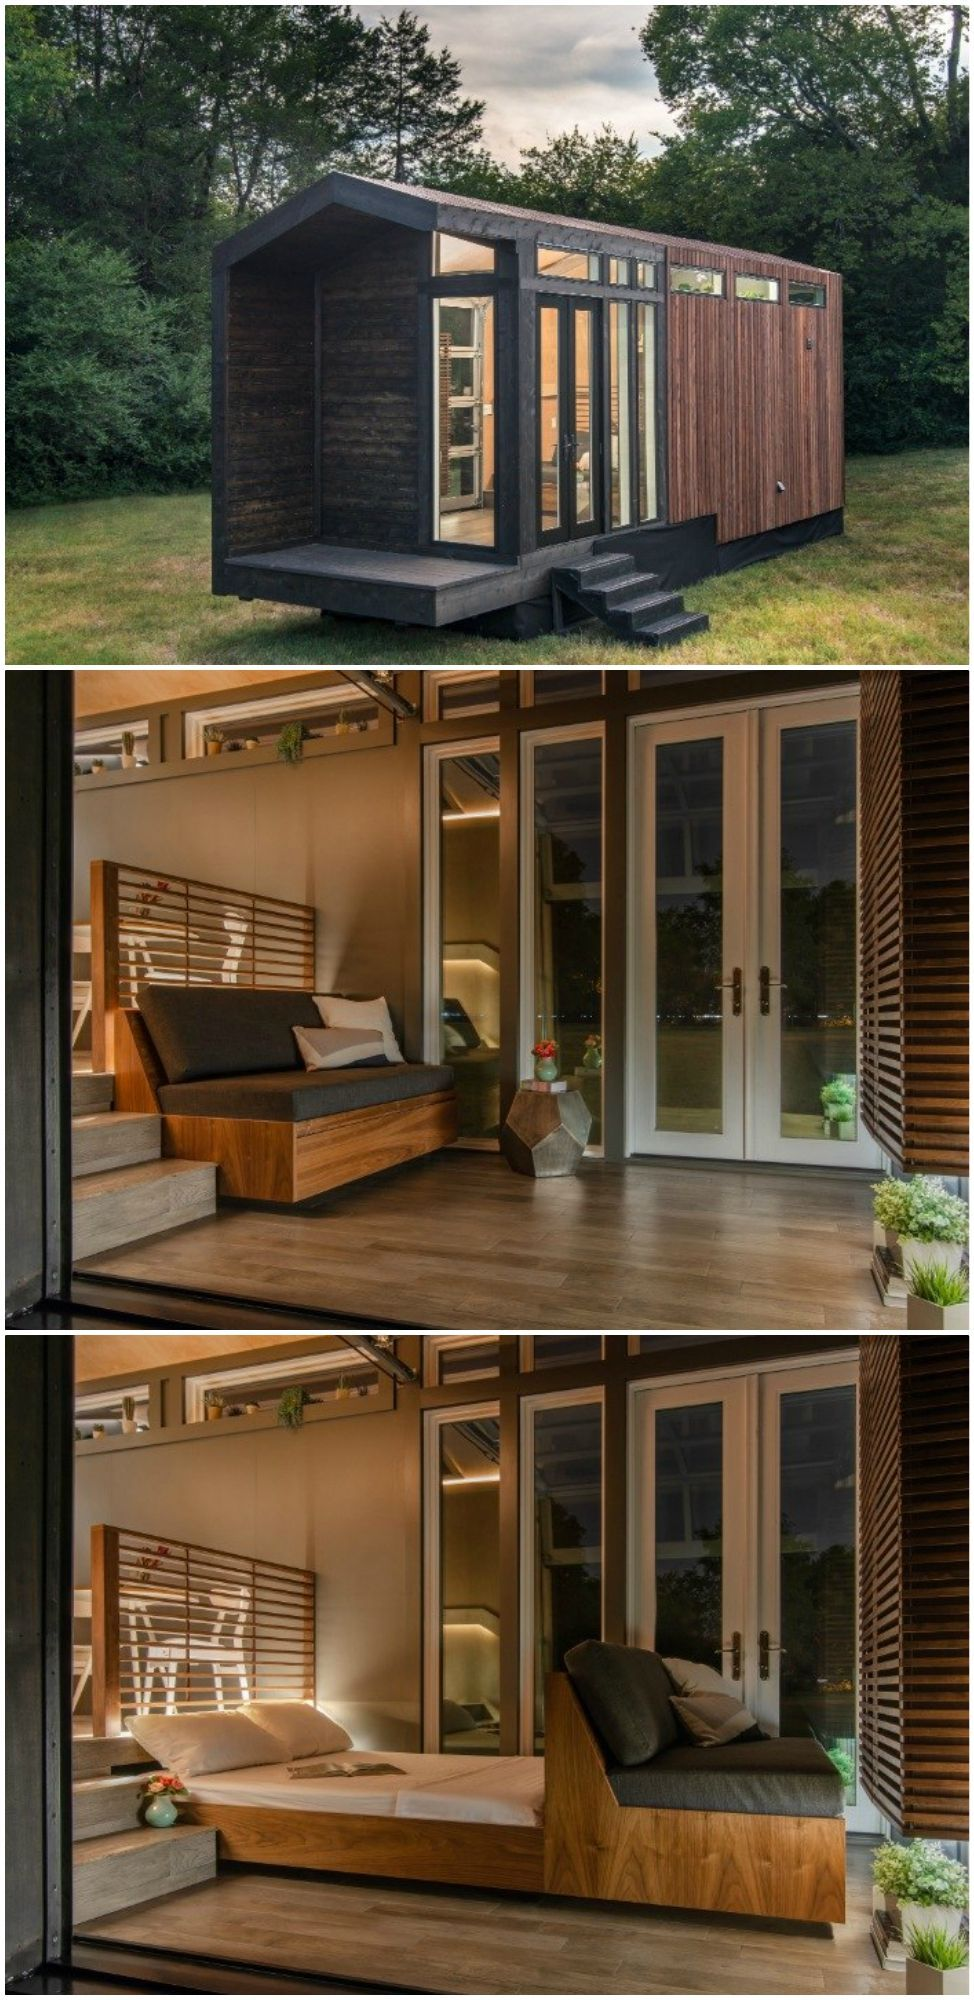 The Orchid tiny house boasts an extra hideaway bed for overnight guests #tinyhouse